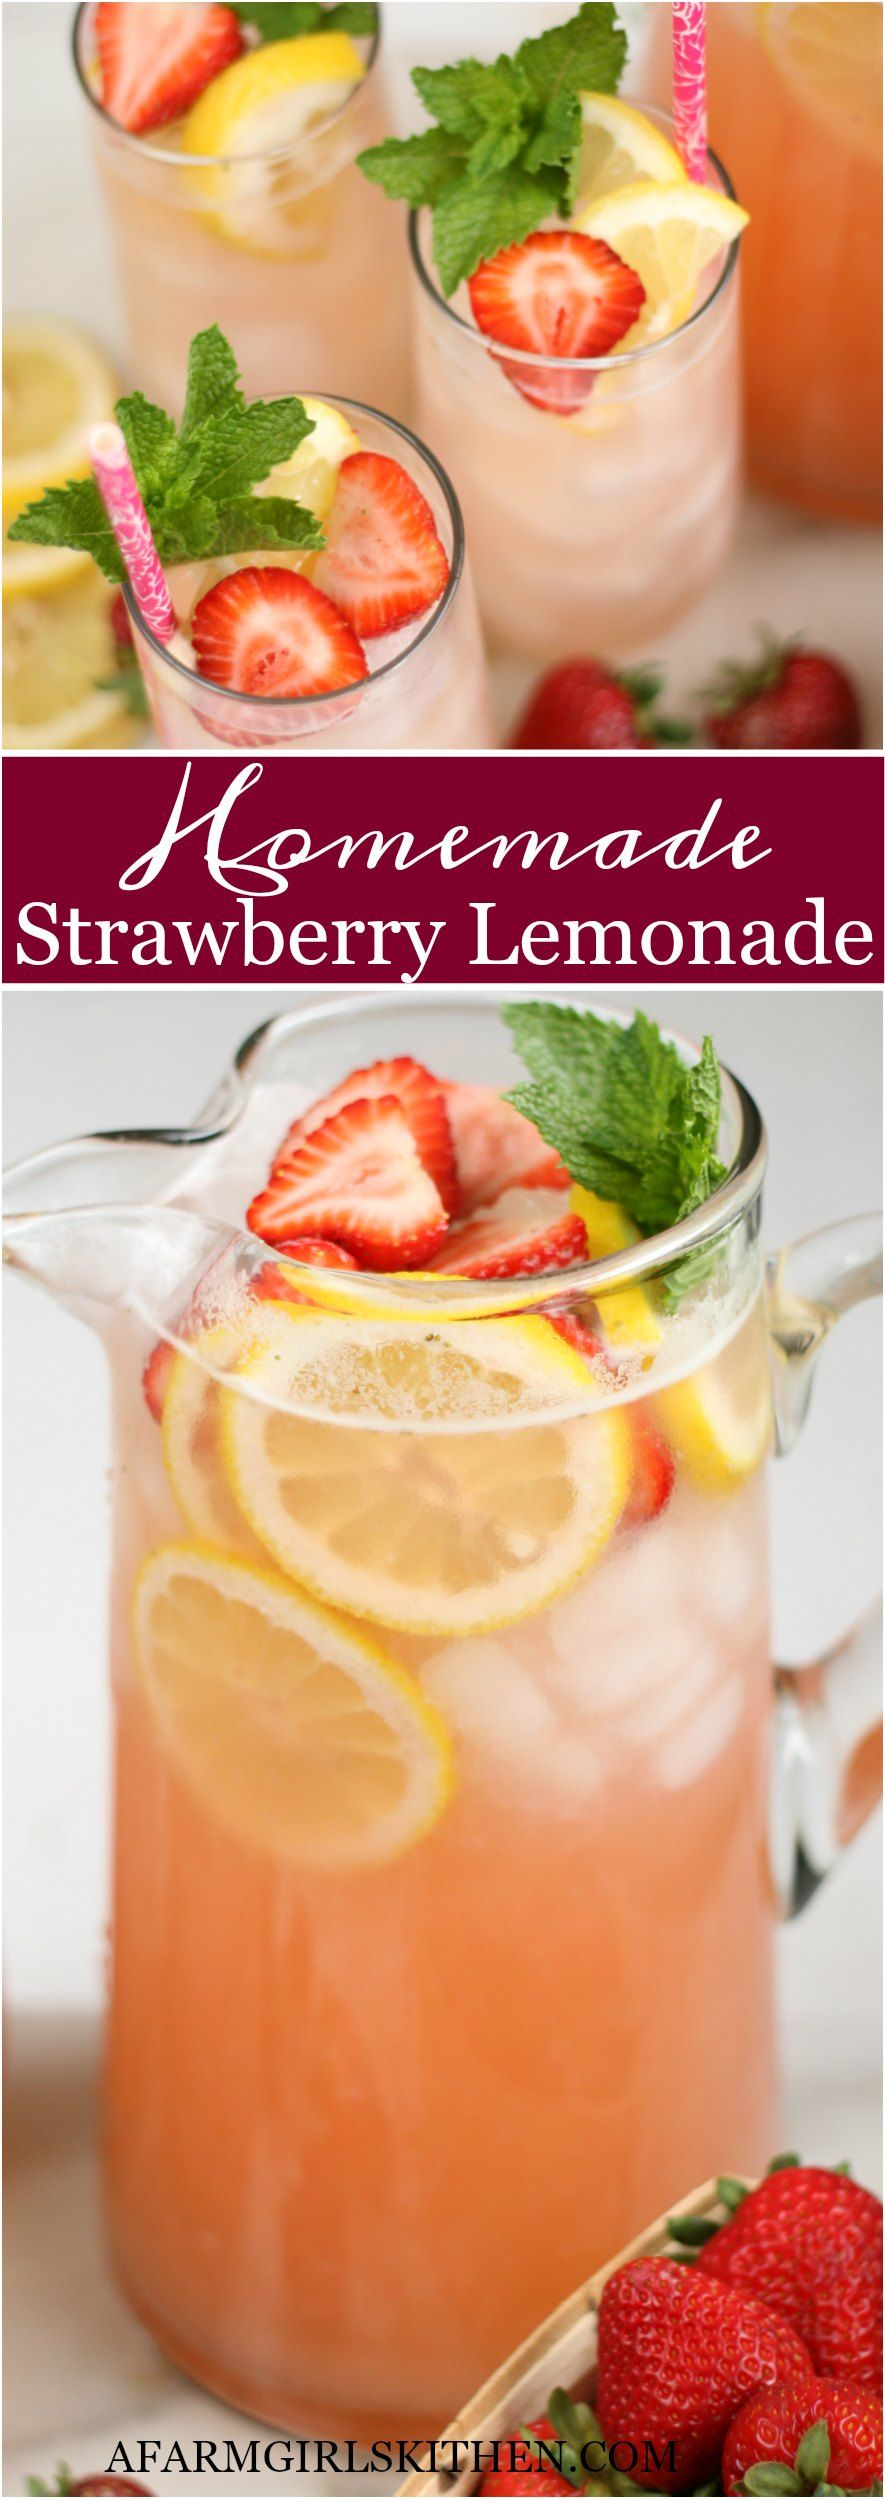 Homemade Strawberry Lemonade (EASY to make with SIMPLE ingredients!)